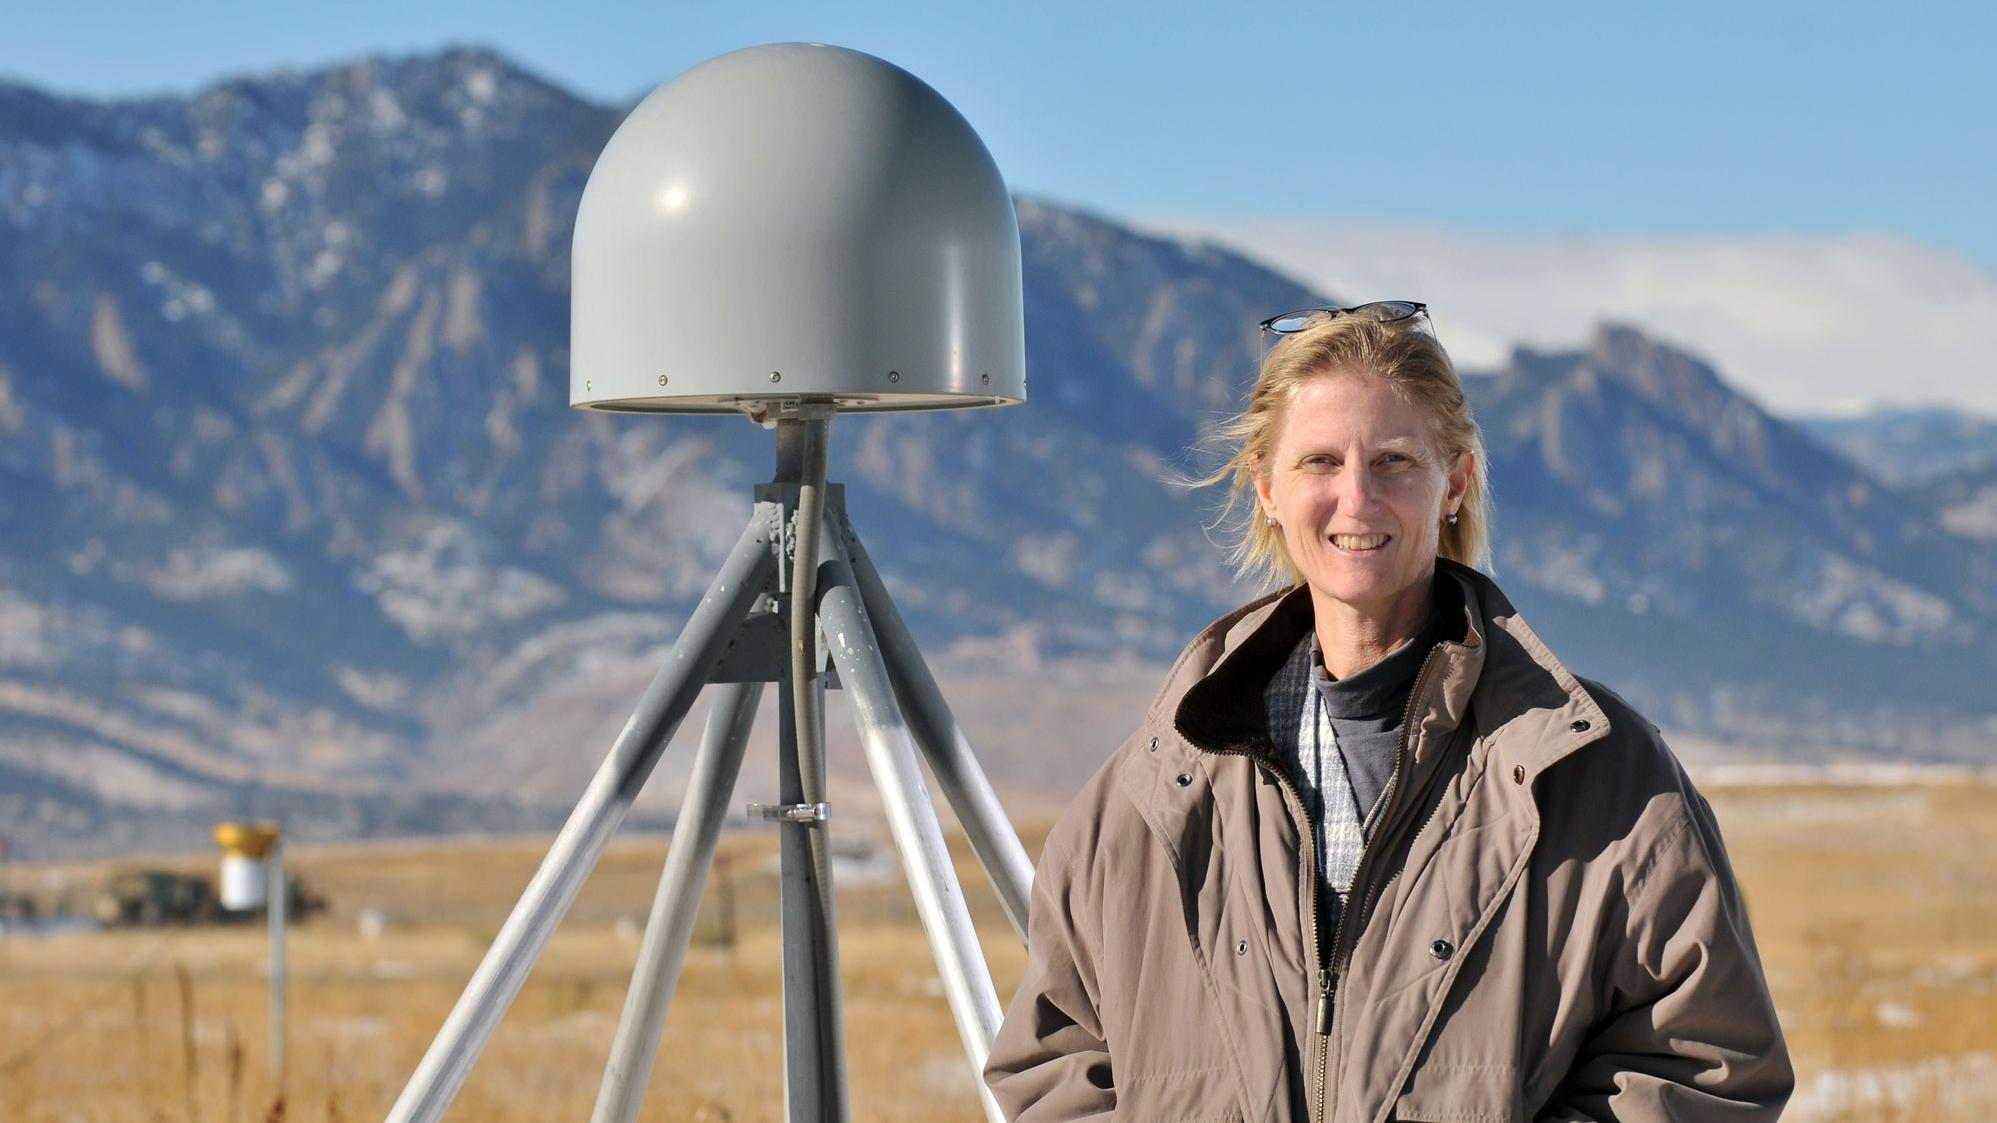 Dr. Kristine M. Larson in front of her favorite GPS site (P041) near Boulder, Colorado. The gray object next to Dr. Larson is a GPS receiver antenna. Photograph by Glenn Asakawa, University of Colorado. Dr. Kristine M. Larson, Professor of Aerospace Engineering Sciences, University of Colorado, Boulder, CO Research interests: Plate tectonics and geodesy, with work developing new ways of using the Global Positioning System (GPS) to study Earth and the water cycle. Research highlights: For many, GPS is a